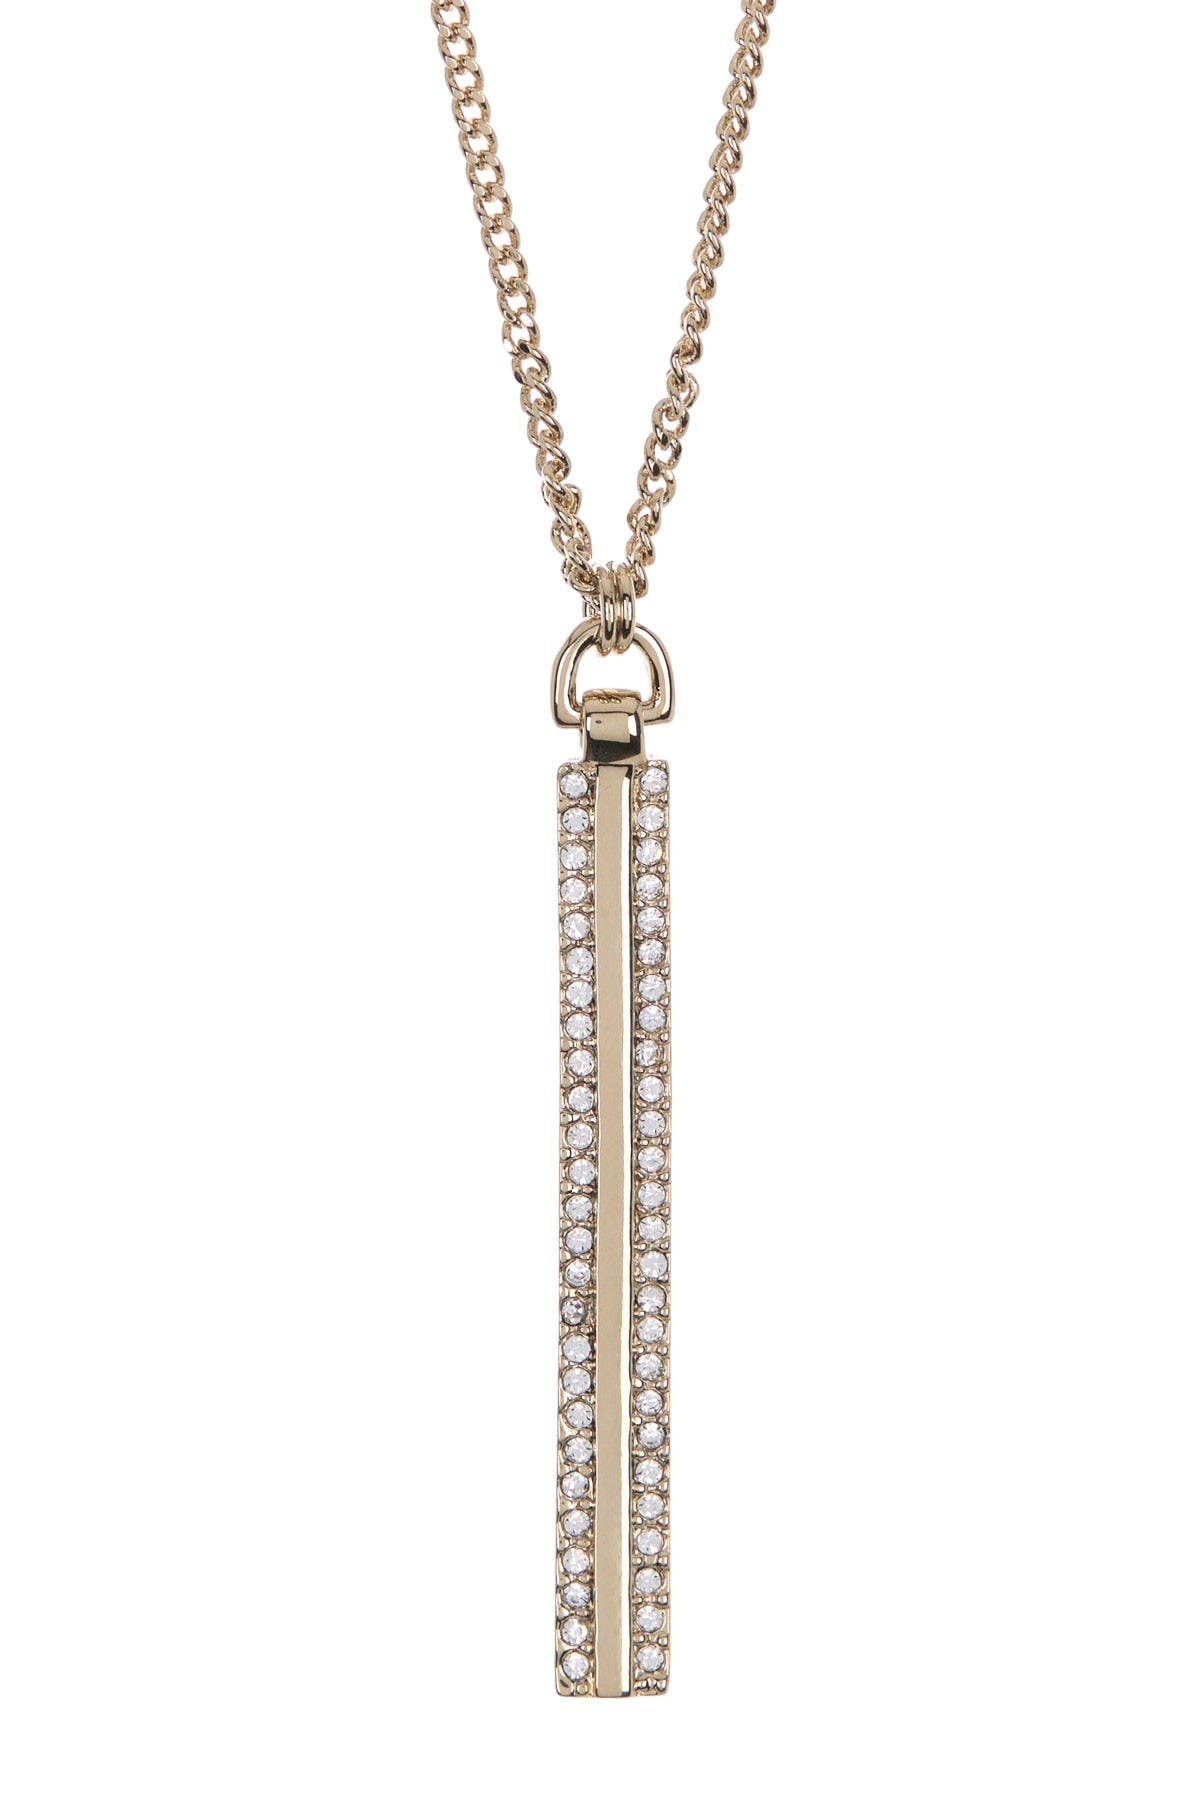 Image of DKNY Crystal Pave Pendant Necklace